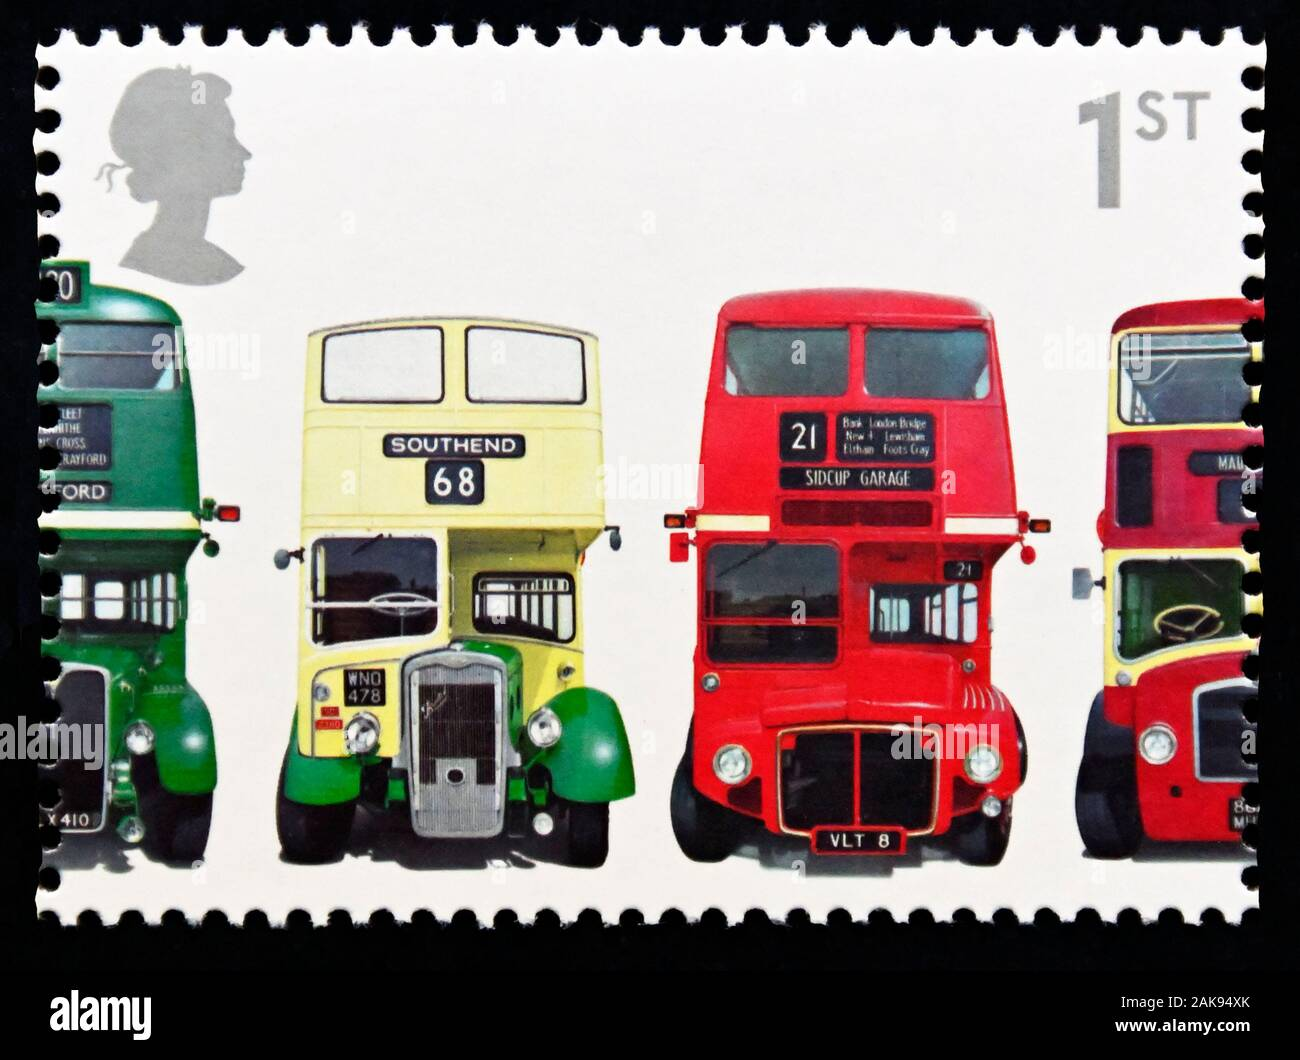 Postage stamp. Great Britain. Queen Elizabeth II. 150th Anniversary of First Double-decker Bus. 1st class. 2001. Stock Photo